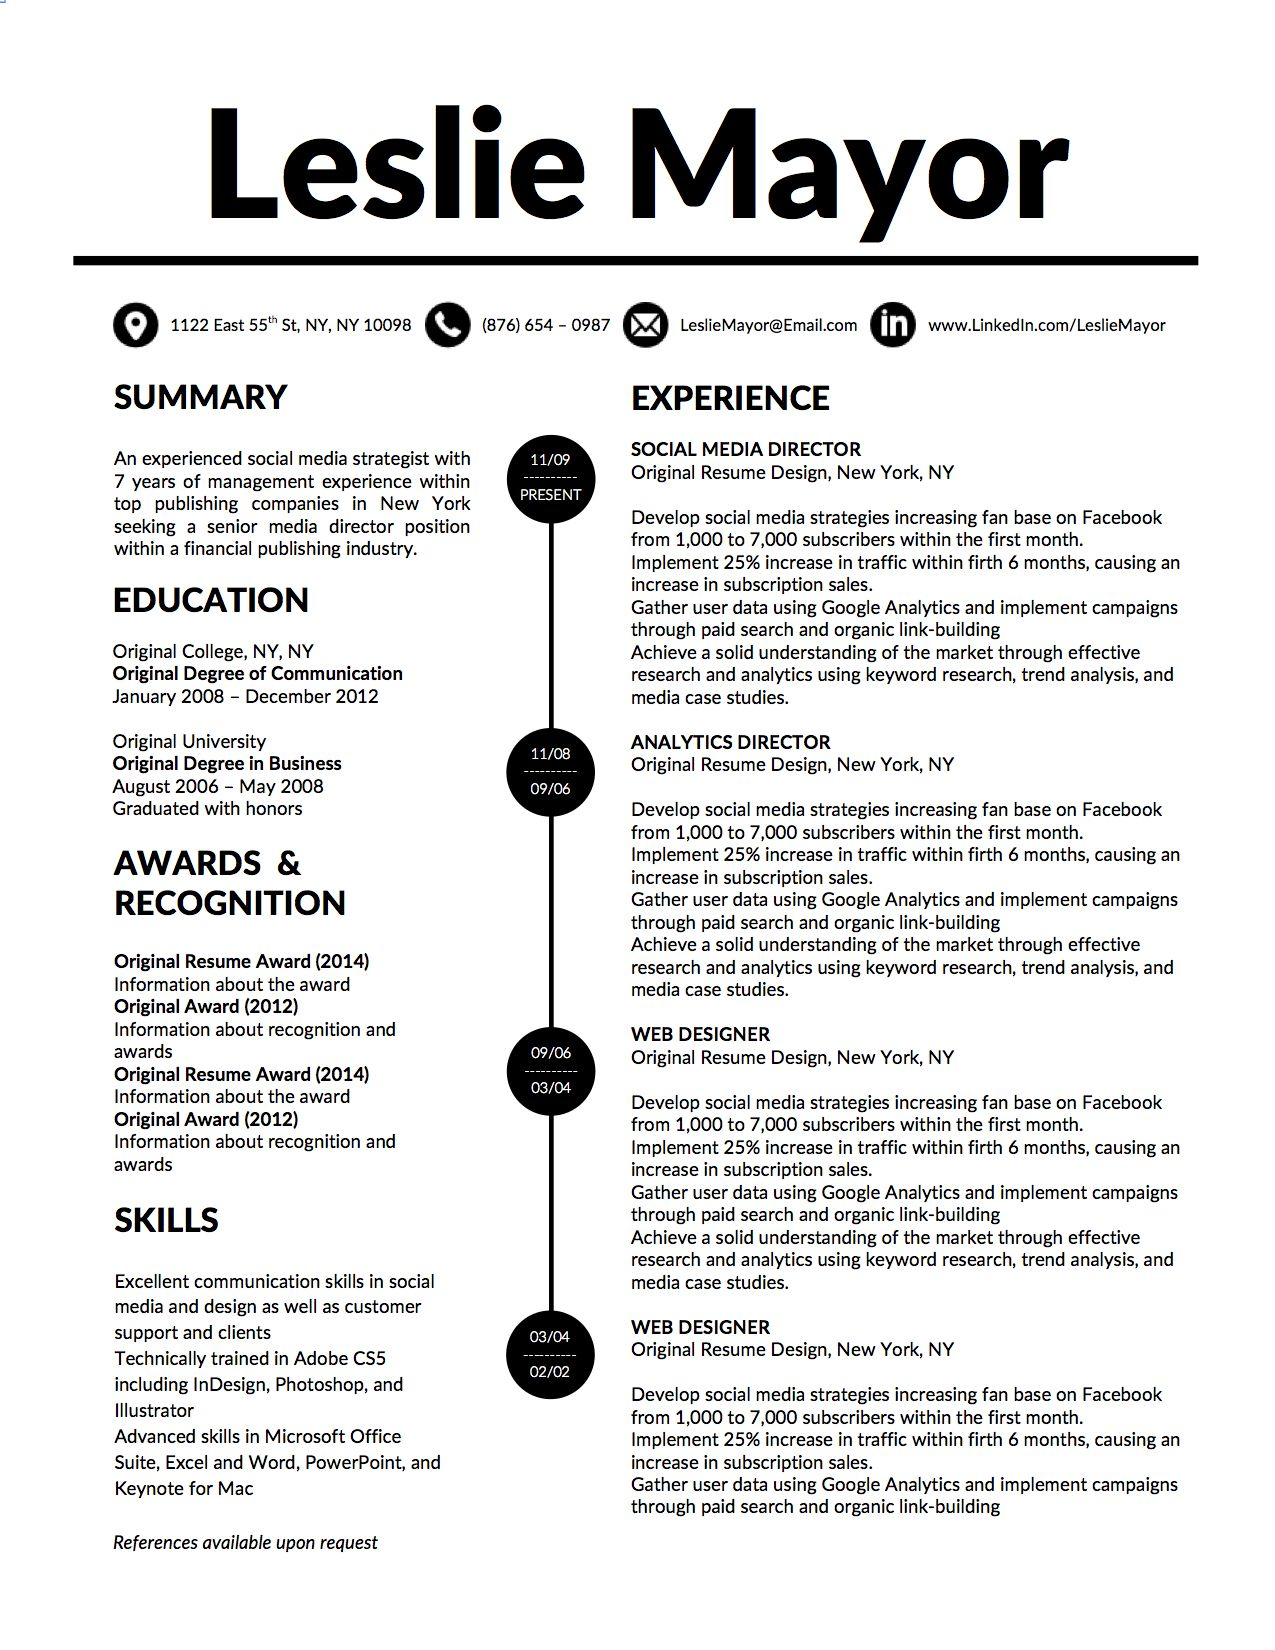 Leslie Mayor Resume Template  Original Resume Design  Prof